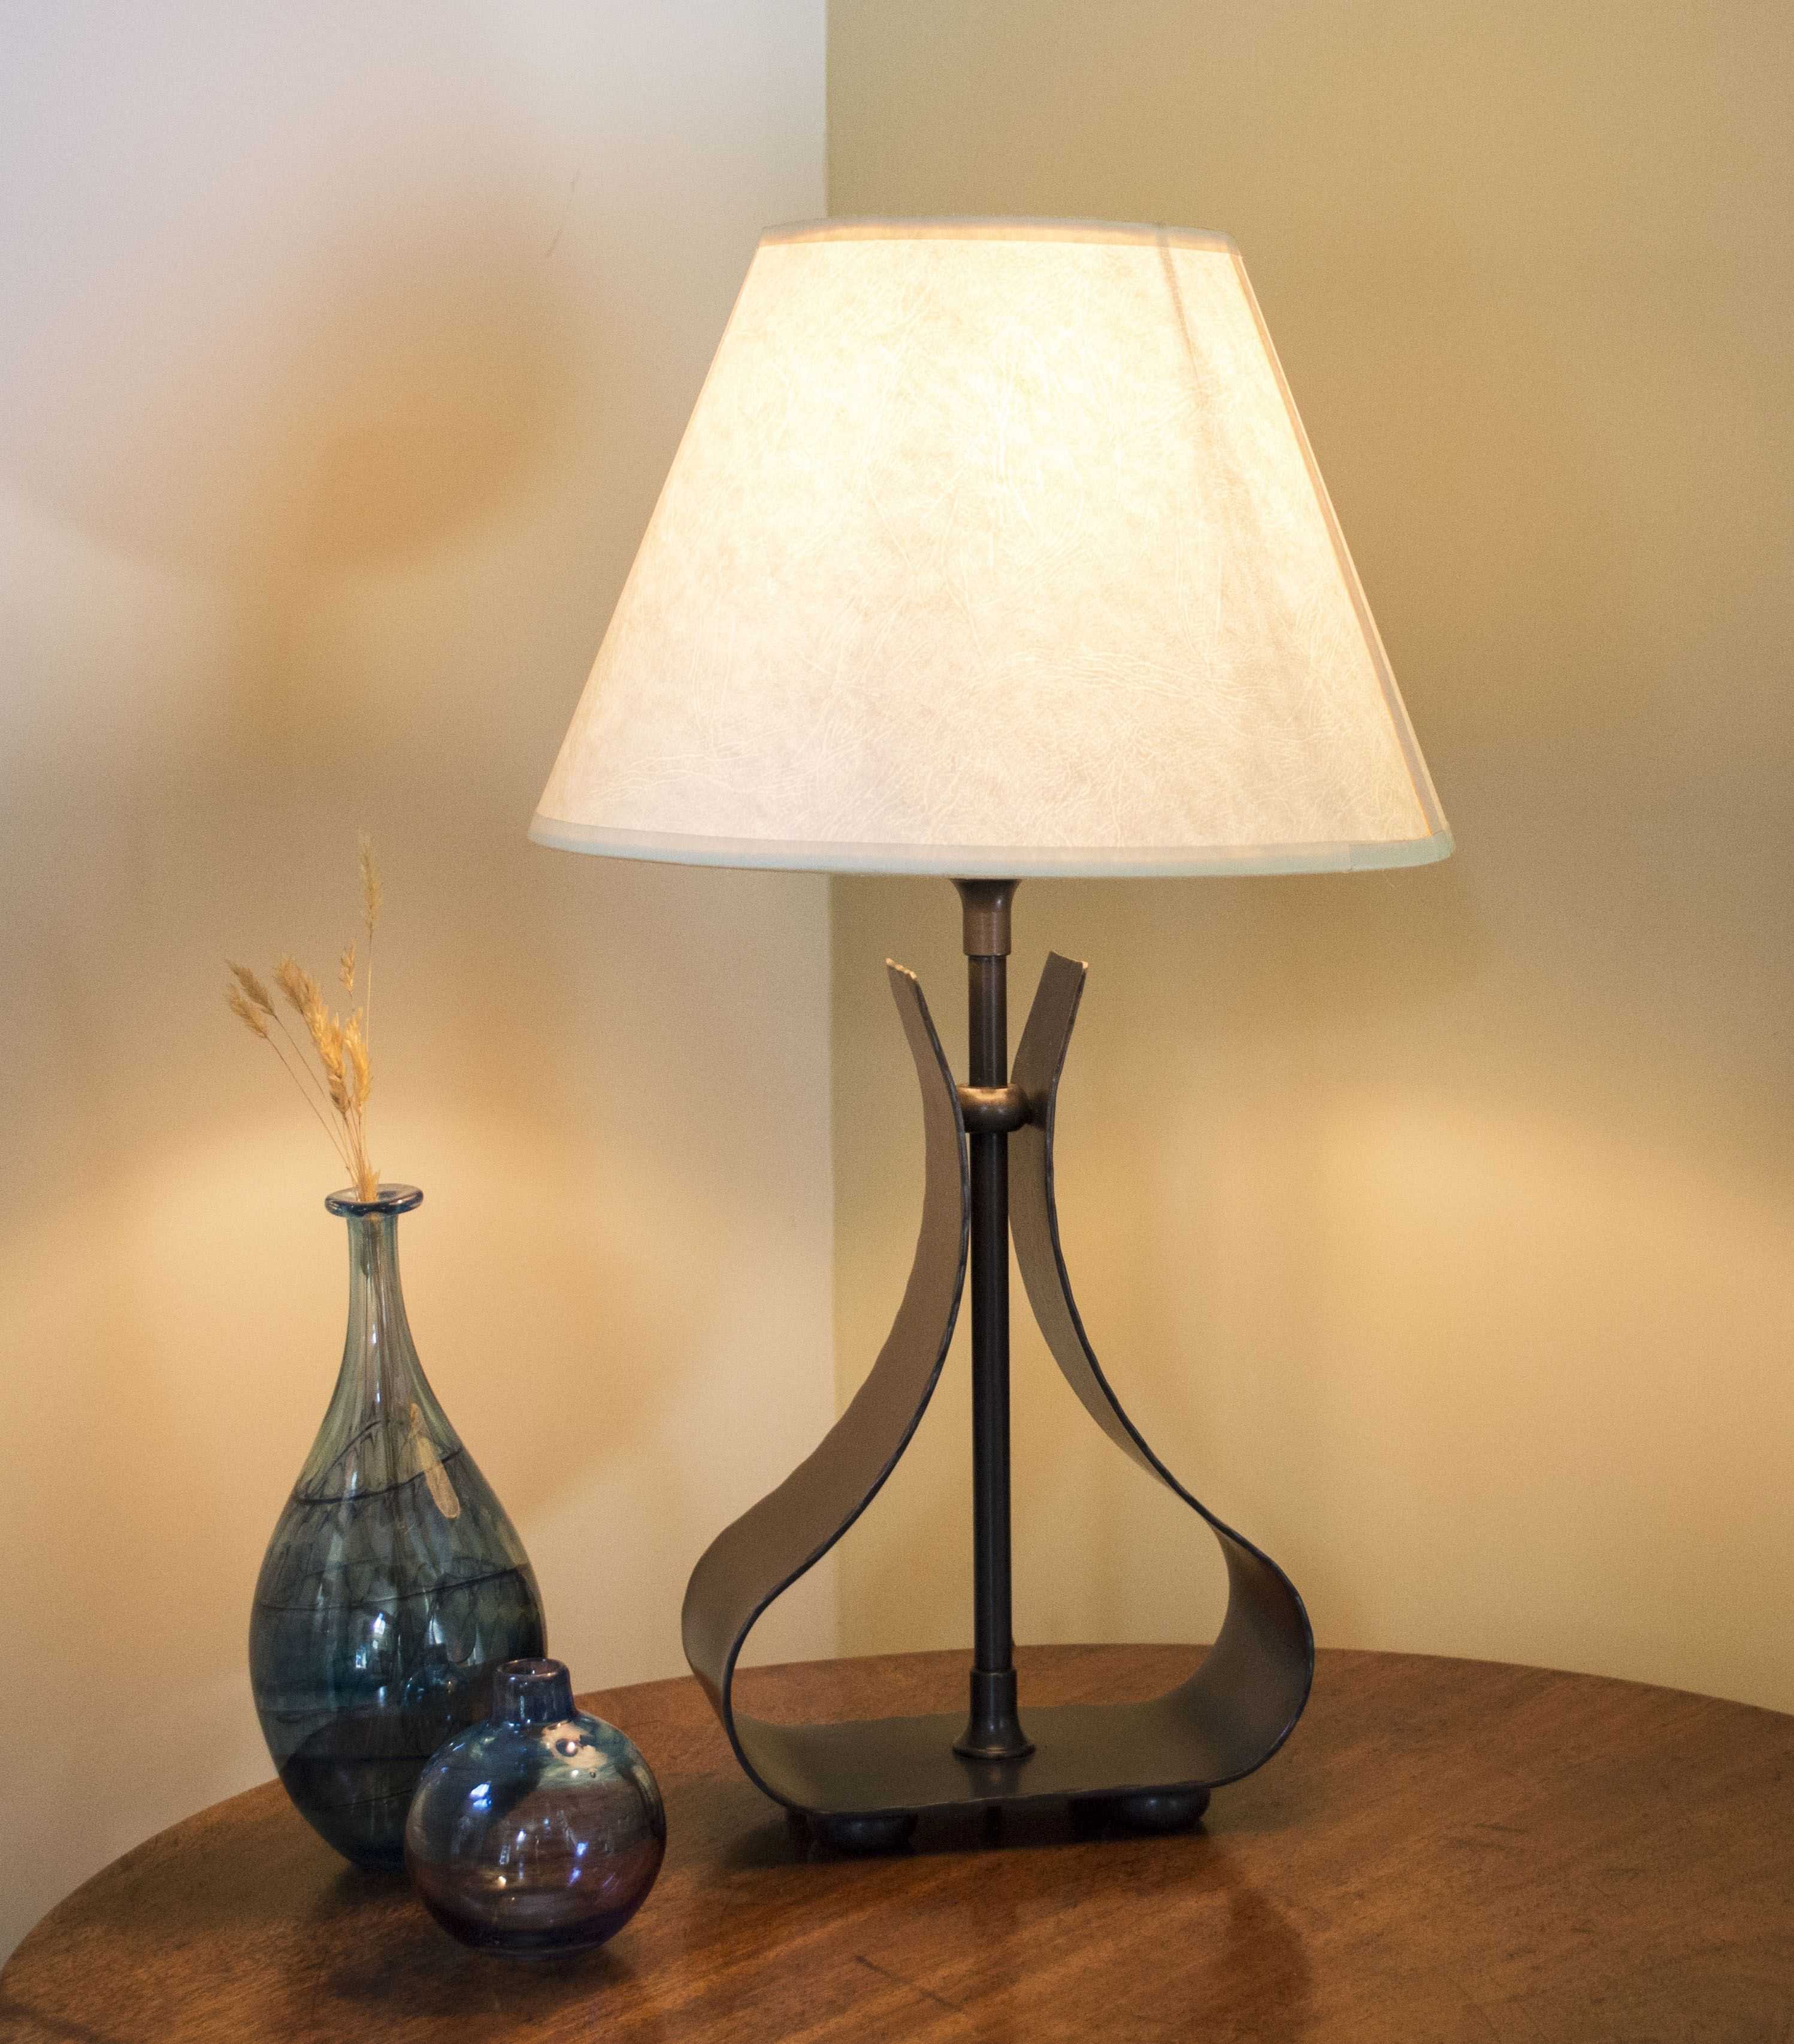 Howbrook Wrought Iron Table Lamp Contemporary Stairs Contemporary House Contemporary Decor